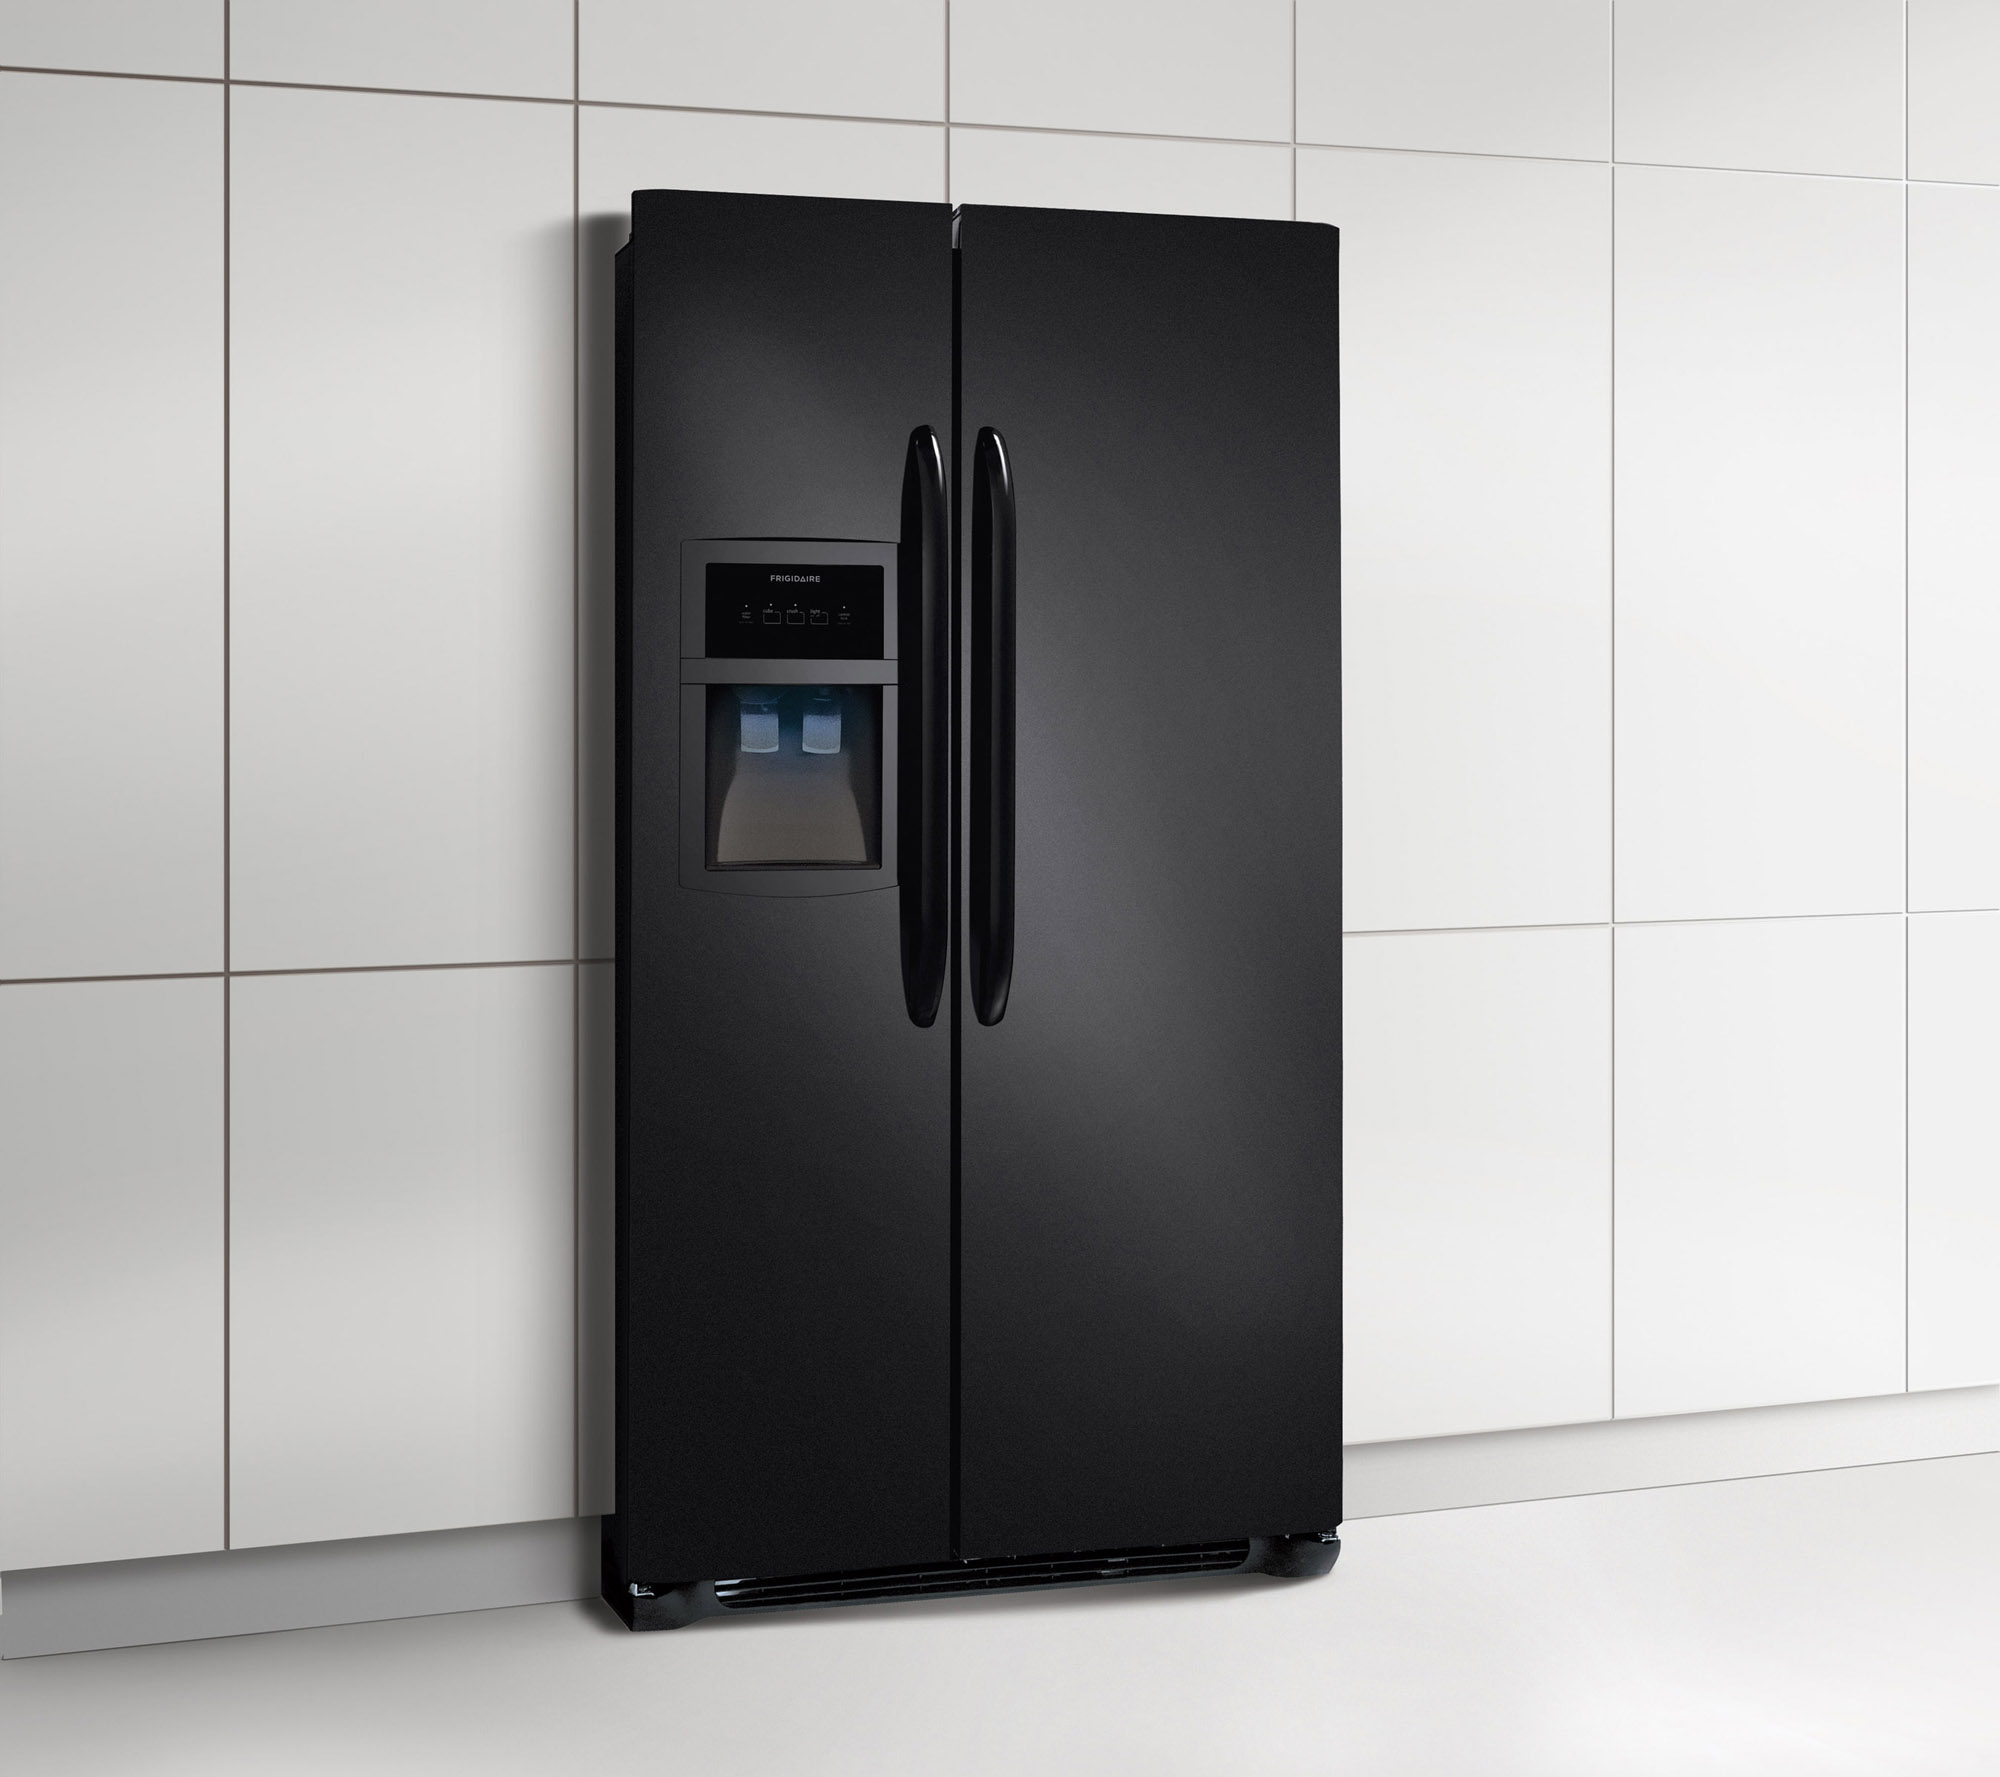 Black Side-by-Side Refrigerator with external water dispenser in front of a white kitchen wall.